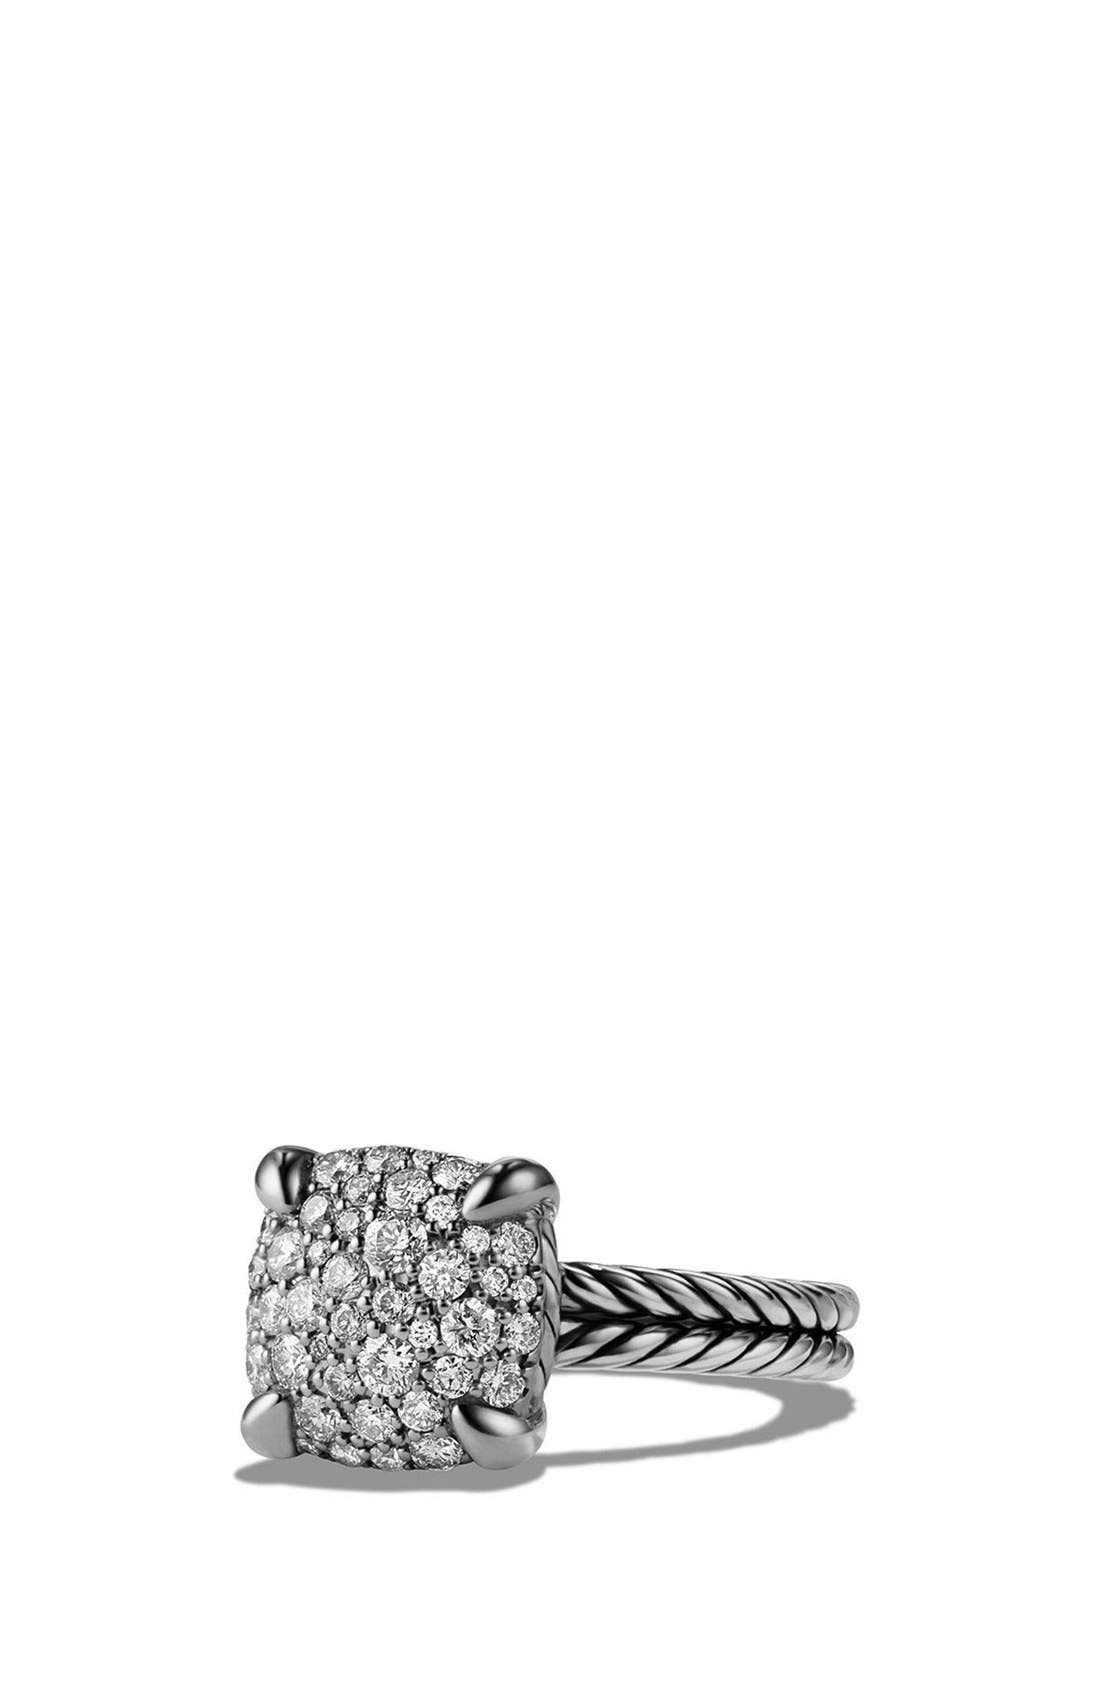 'Châtelaine' Ring with Diamonds,                             Main thumbnail 1, color,                             SILVER